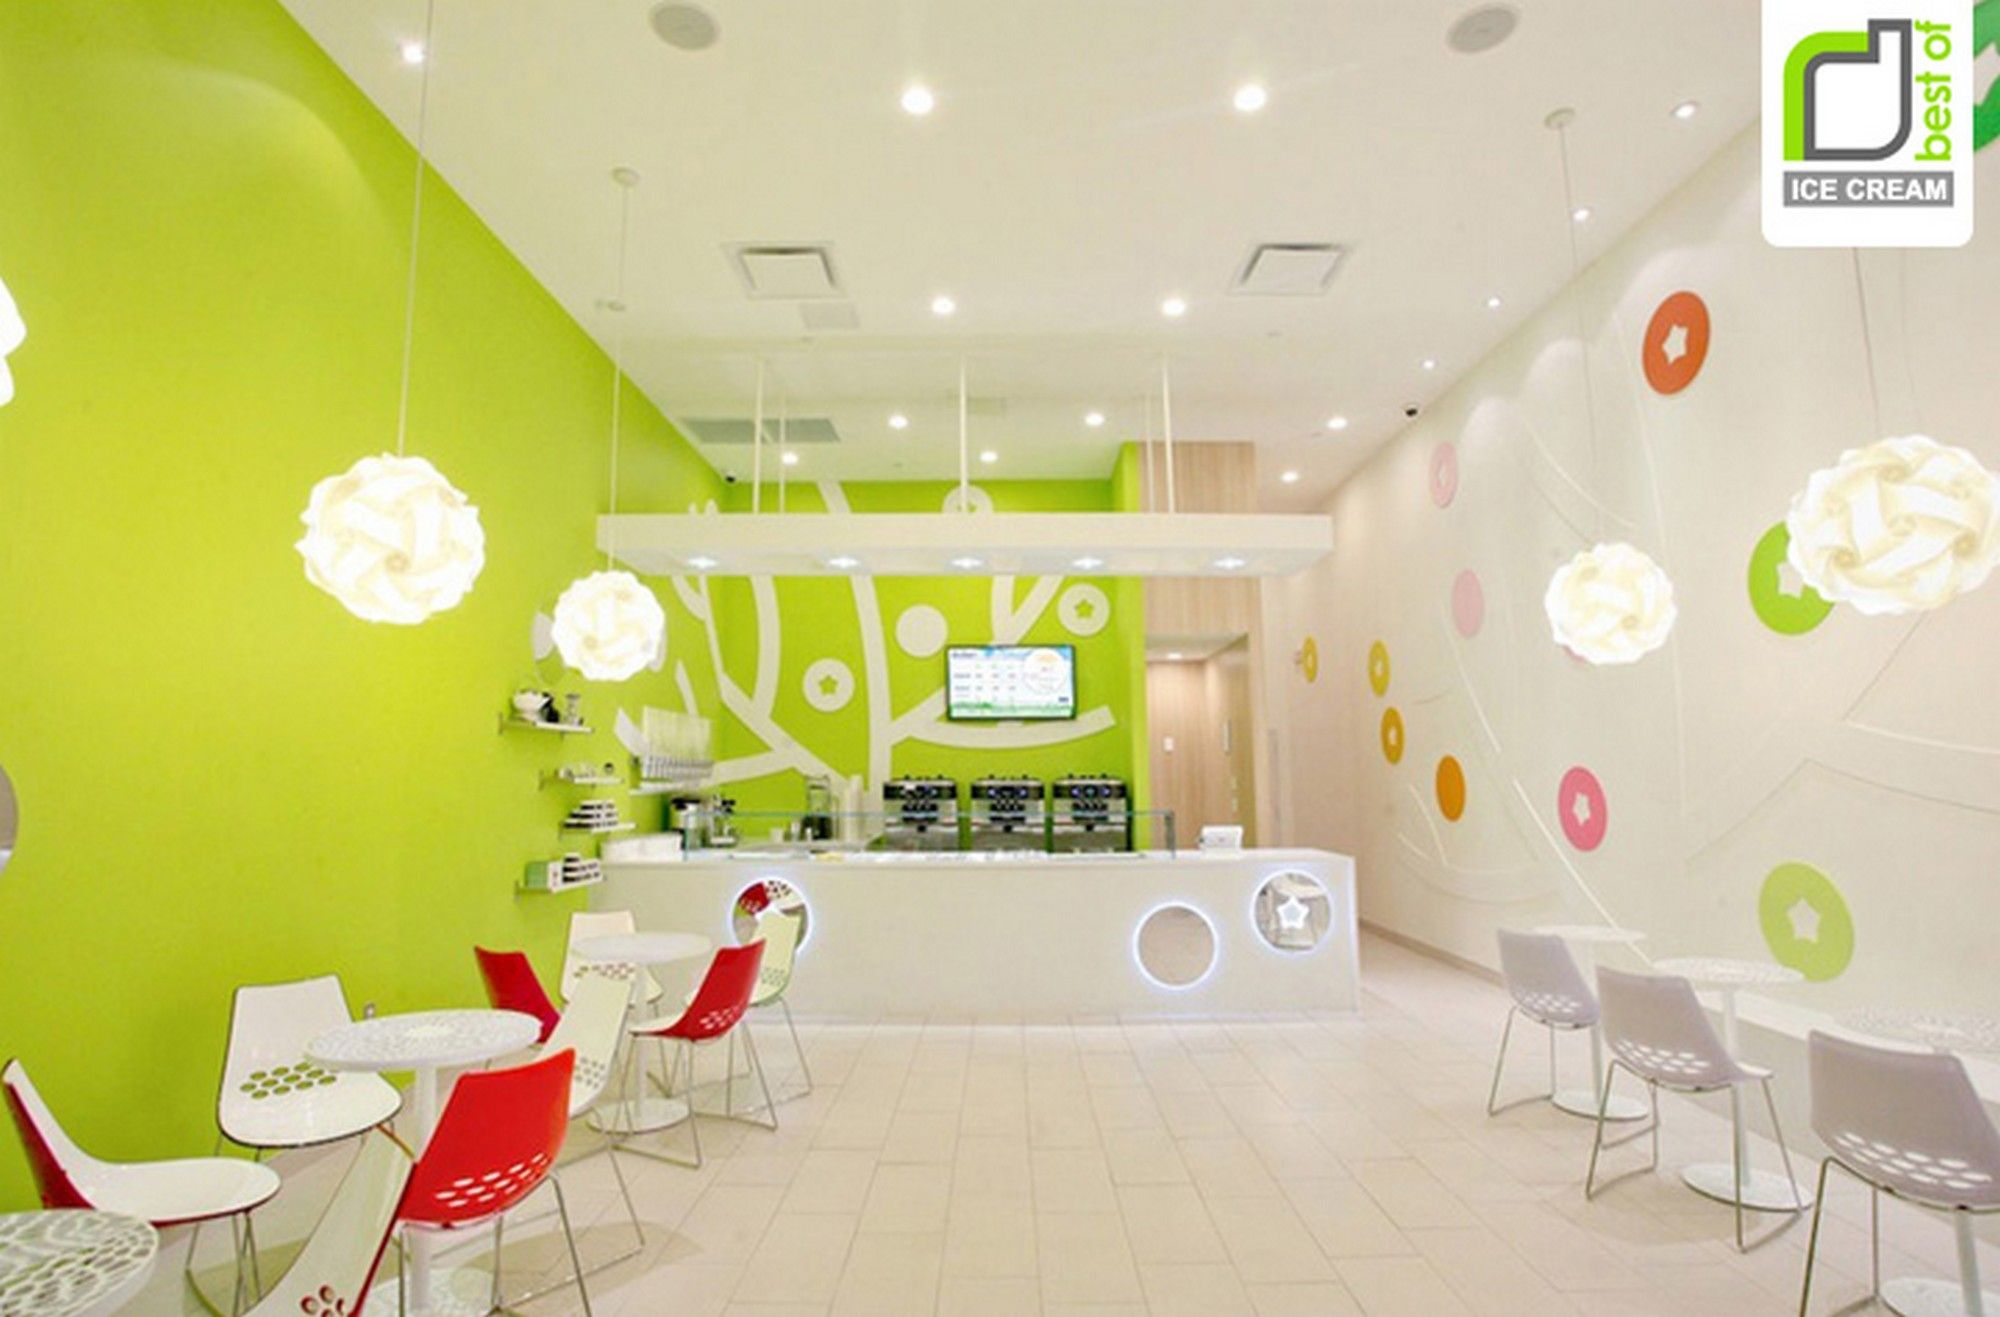 Decorating Cool Interior Design Of An Ice Cream With Green Wall Paint Ideas And Small Round Table Sets Best